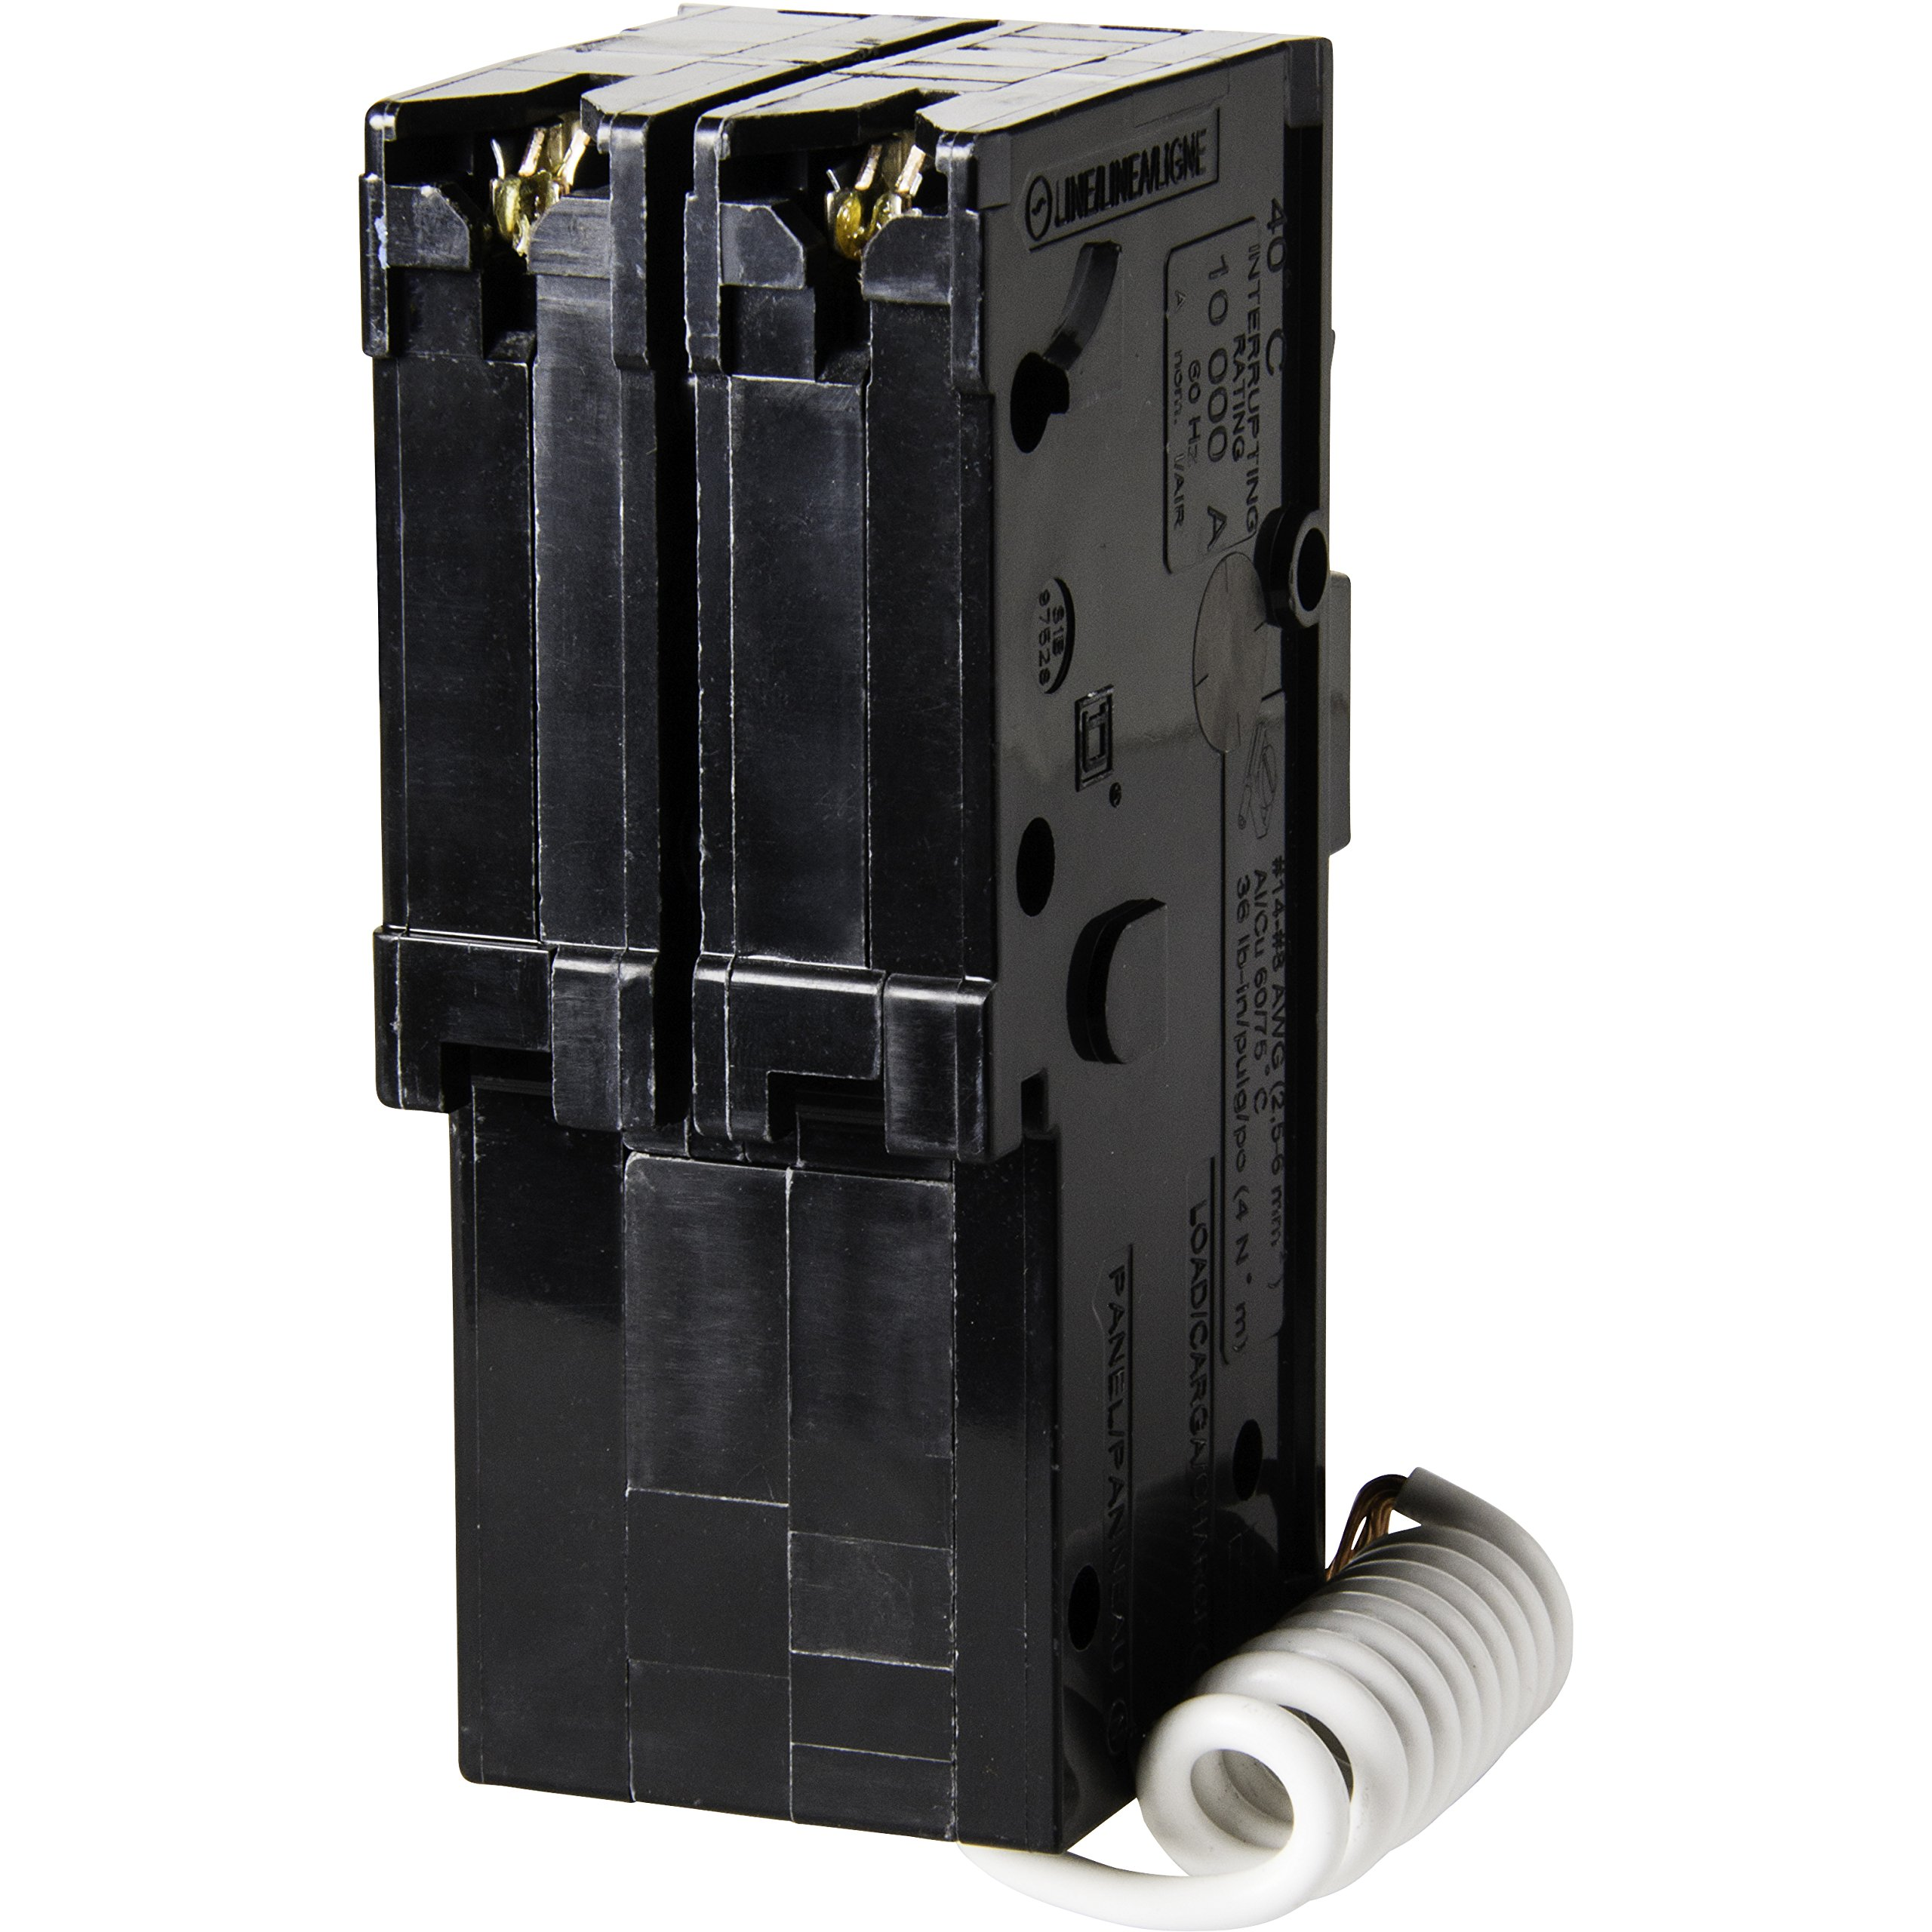 Square D by Schneider Electric HOM215CAFIC Homeline 15 Amp Two-Pole CAFCI Circuit Breaker, by Square D by Schneider Electric (Image #3)